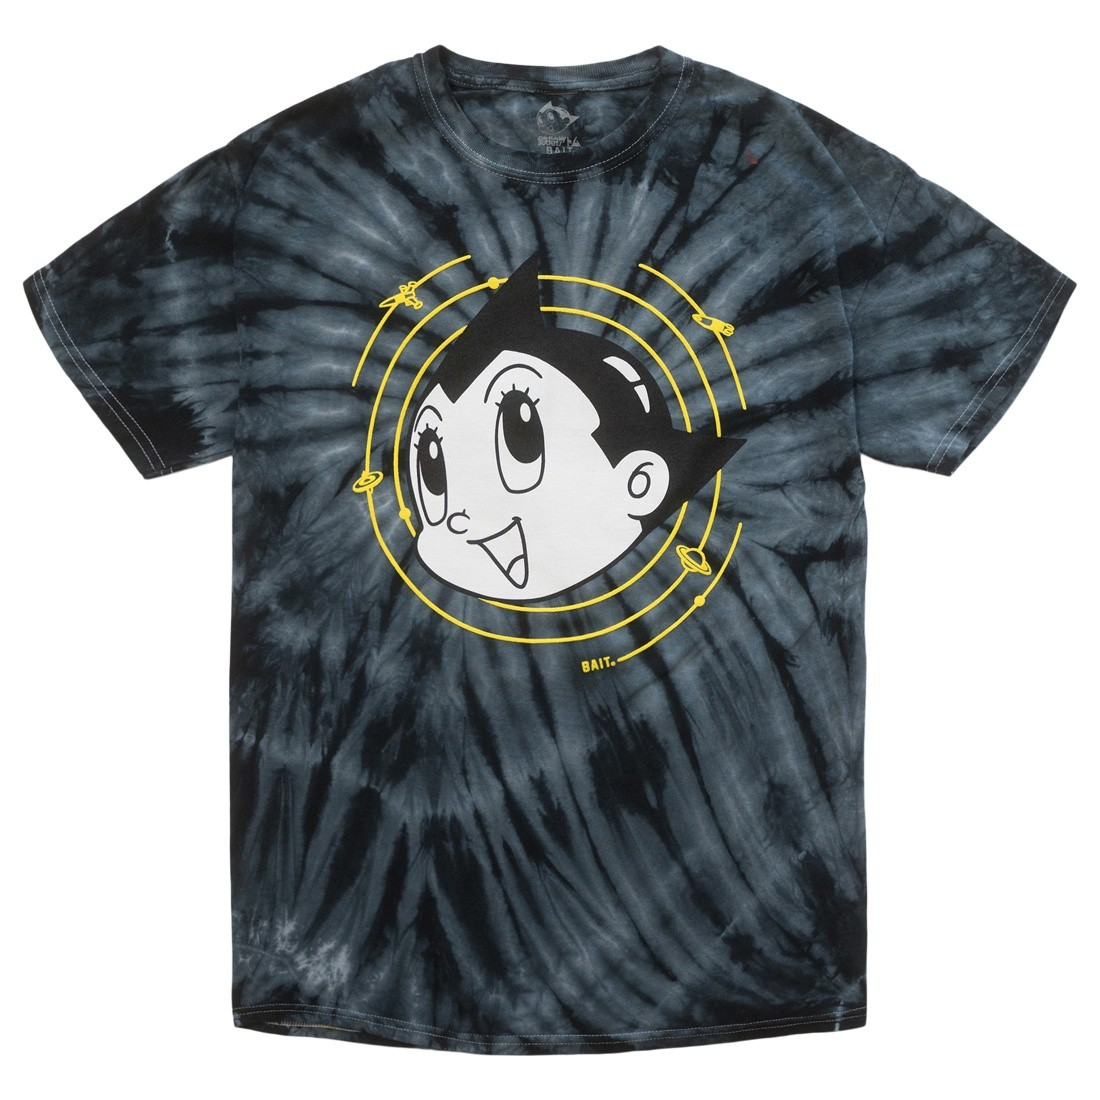 BAIT x Astro Boy Men Spiral Tie Dye Glow In The Dark Tee (black / green)